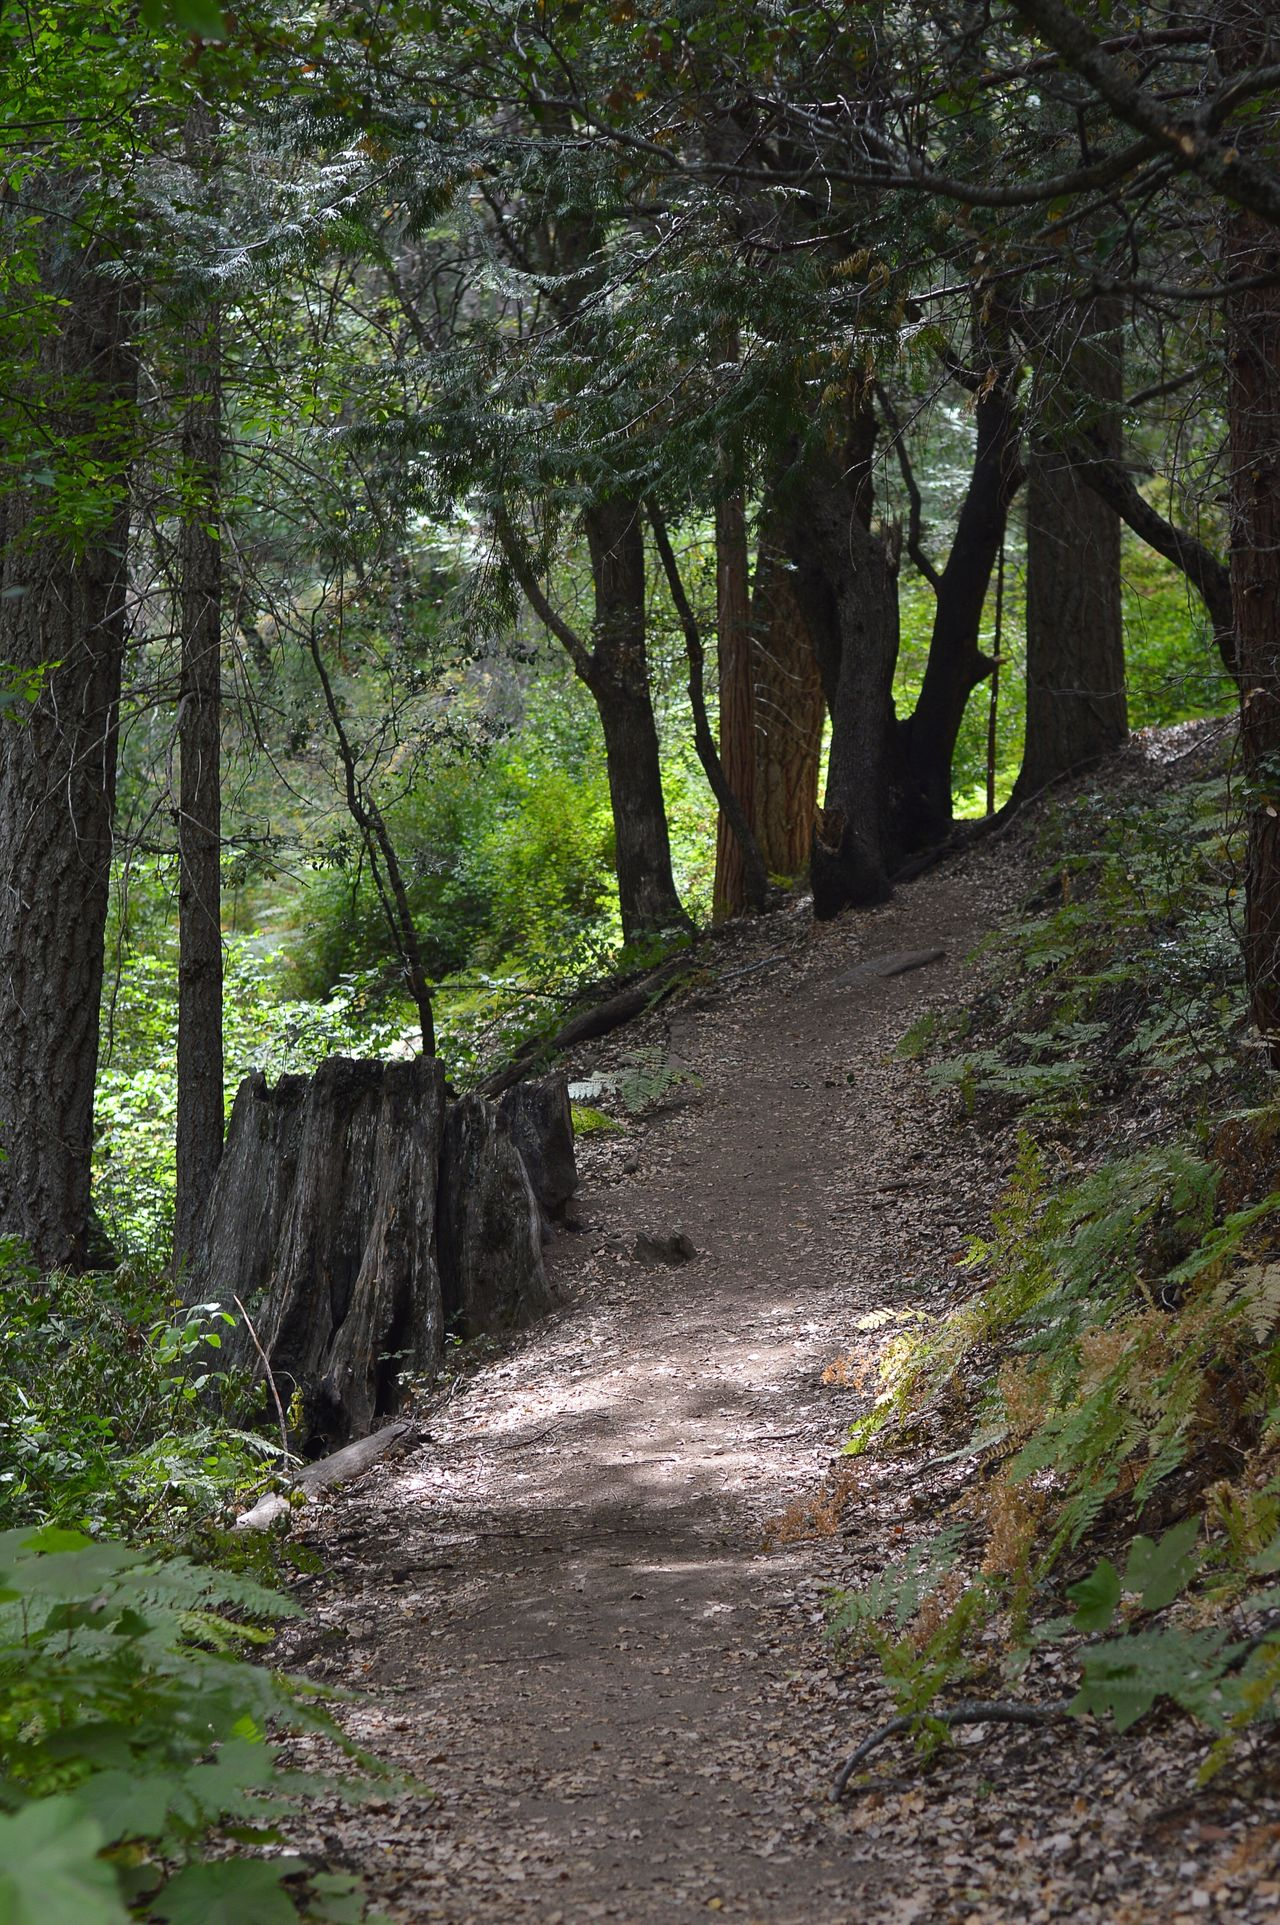 Walking along mountain trails Palomar Mountain Forest Nature Landscape